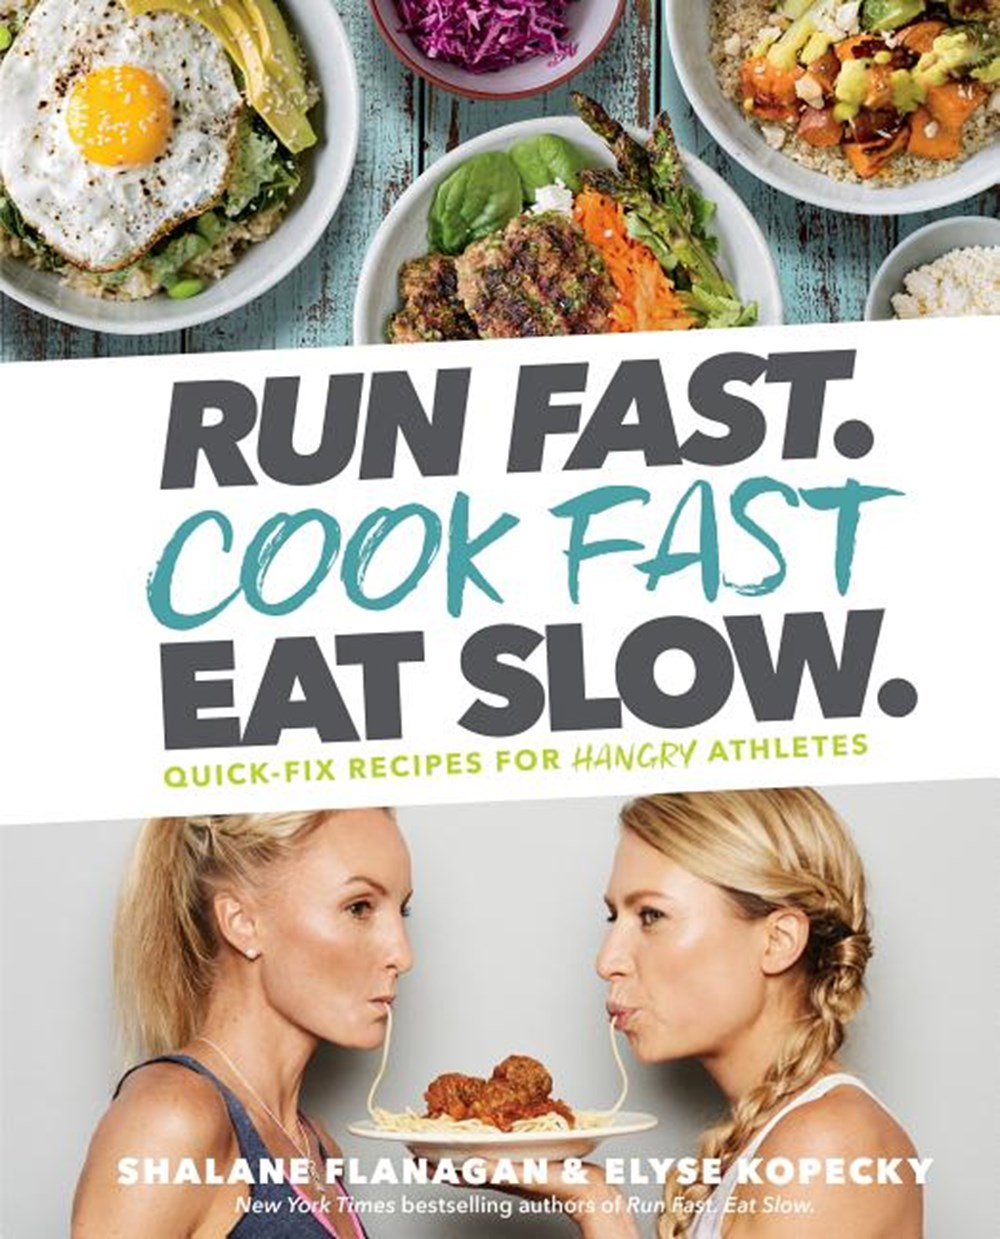 Run Fast. Cook Fast. Eat Slow. Quick-Fix Recipes for Hangry Athletes: A Cookbook